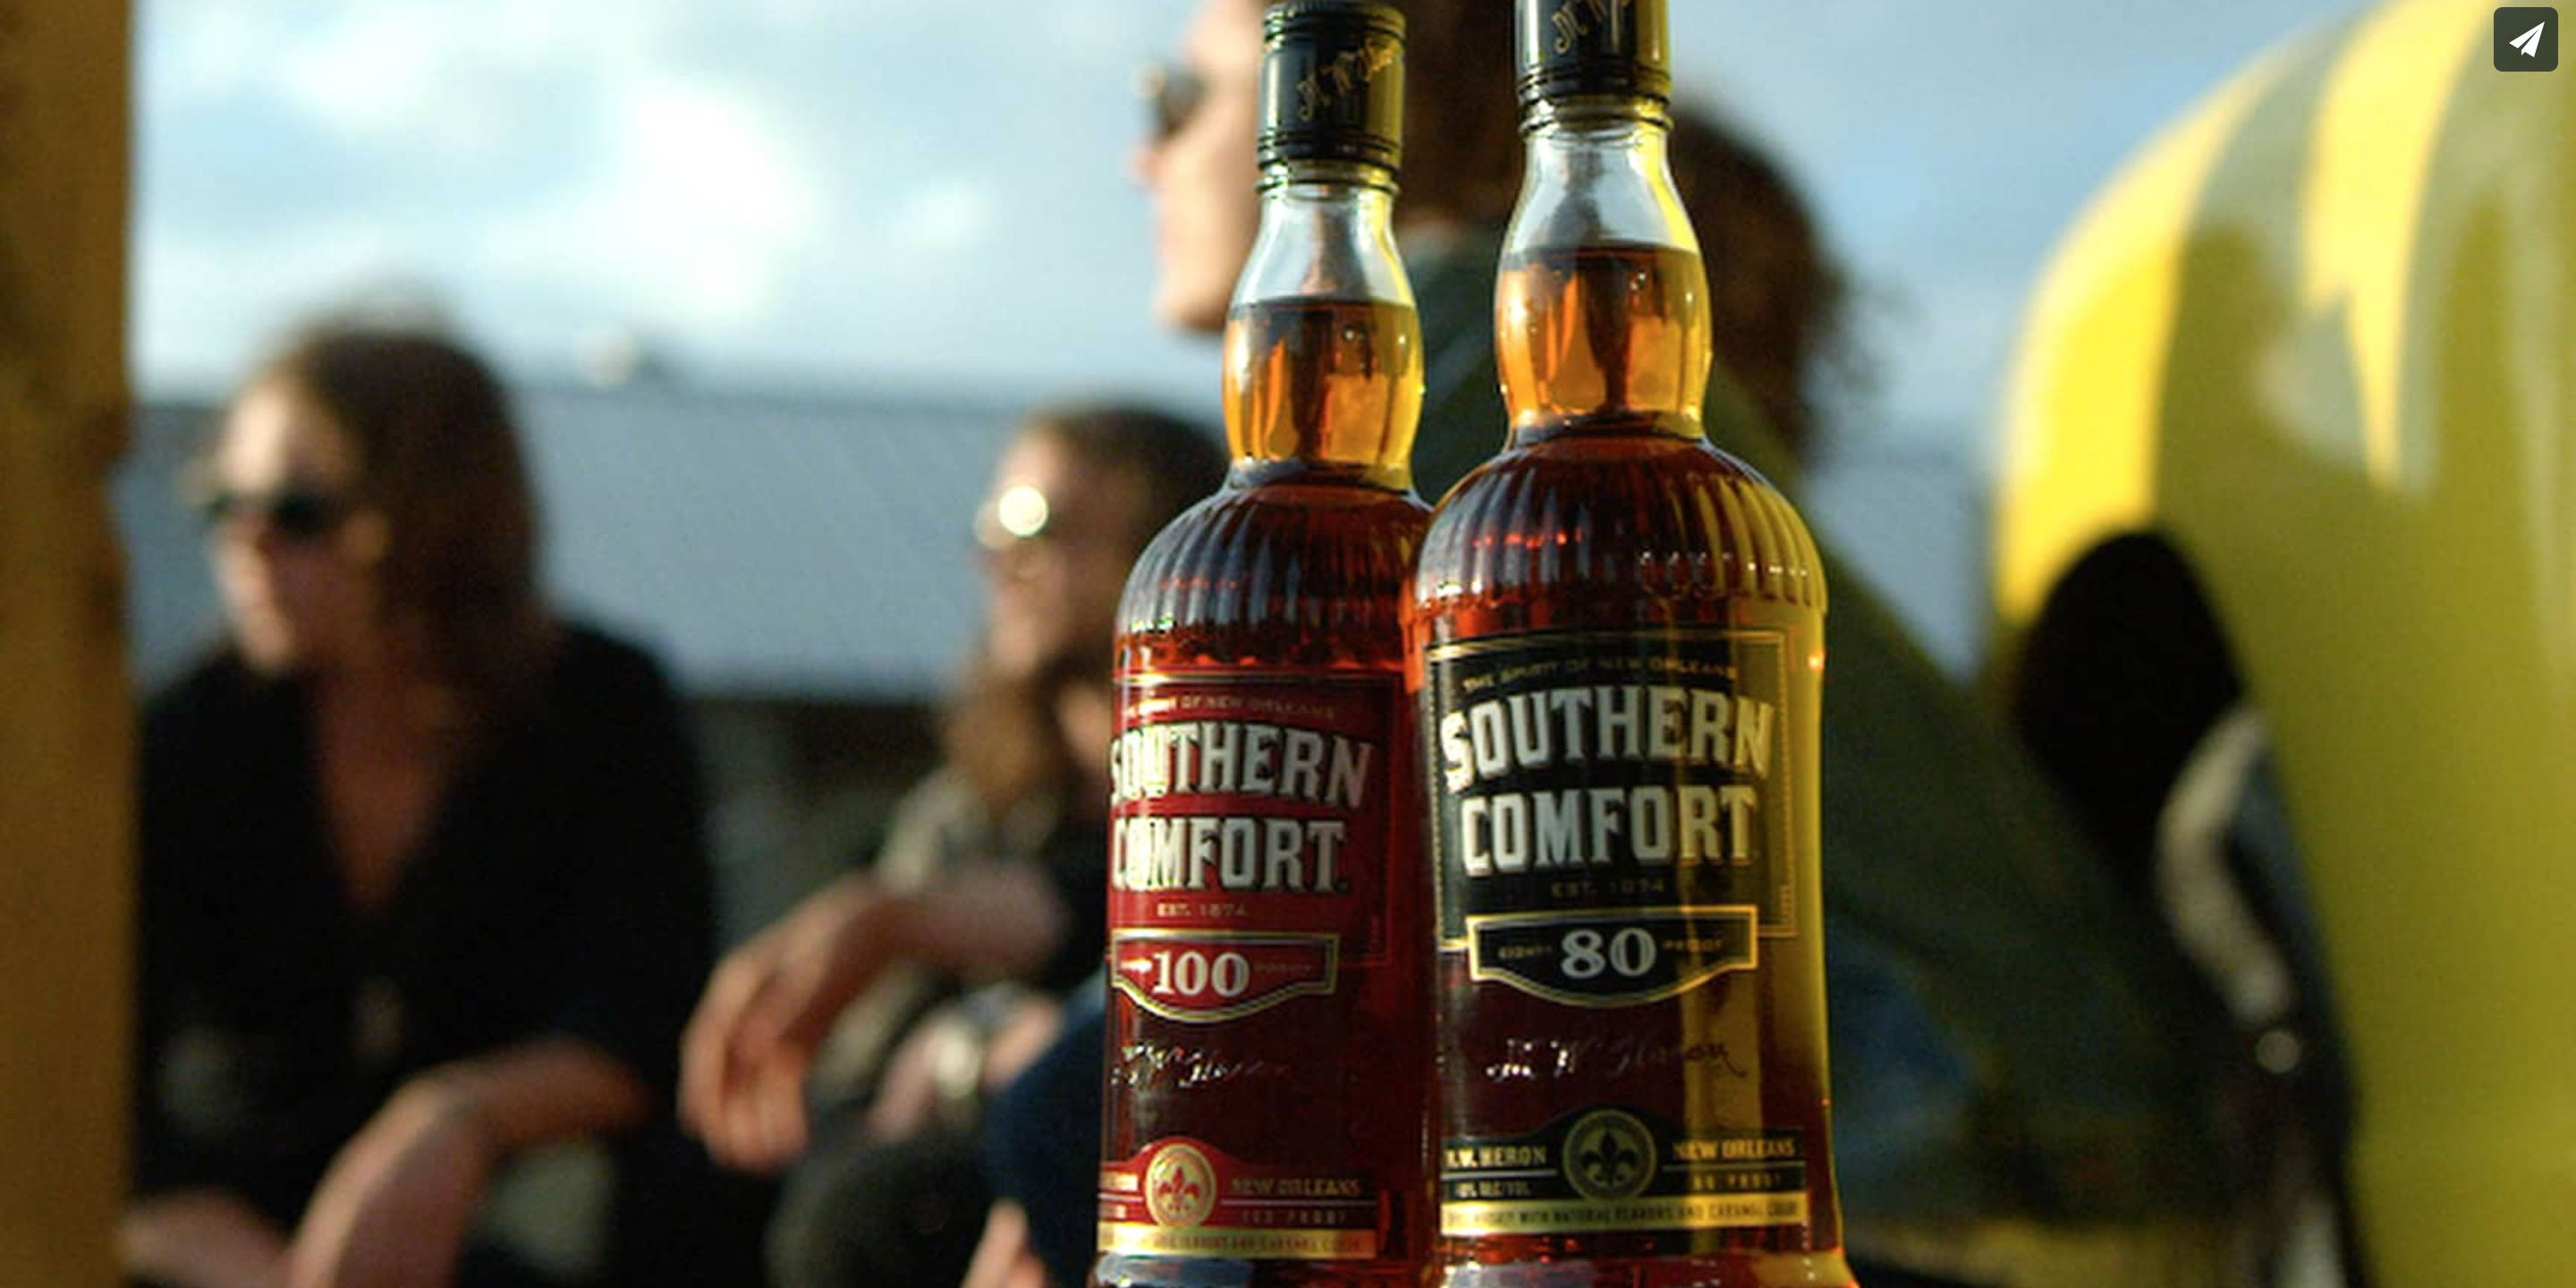 Southern Comfort Presents: Southern Sounds